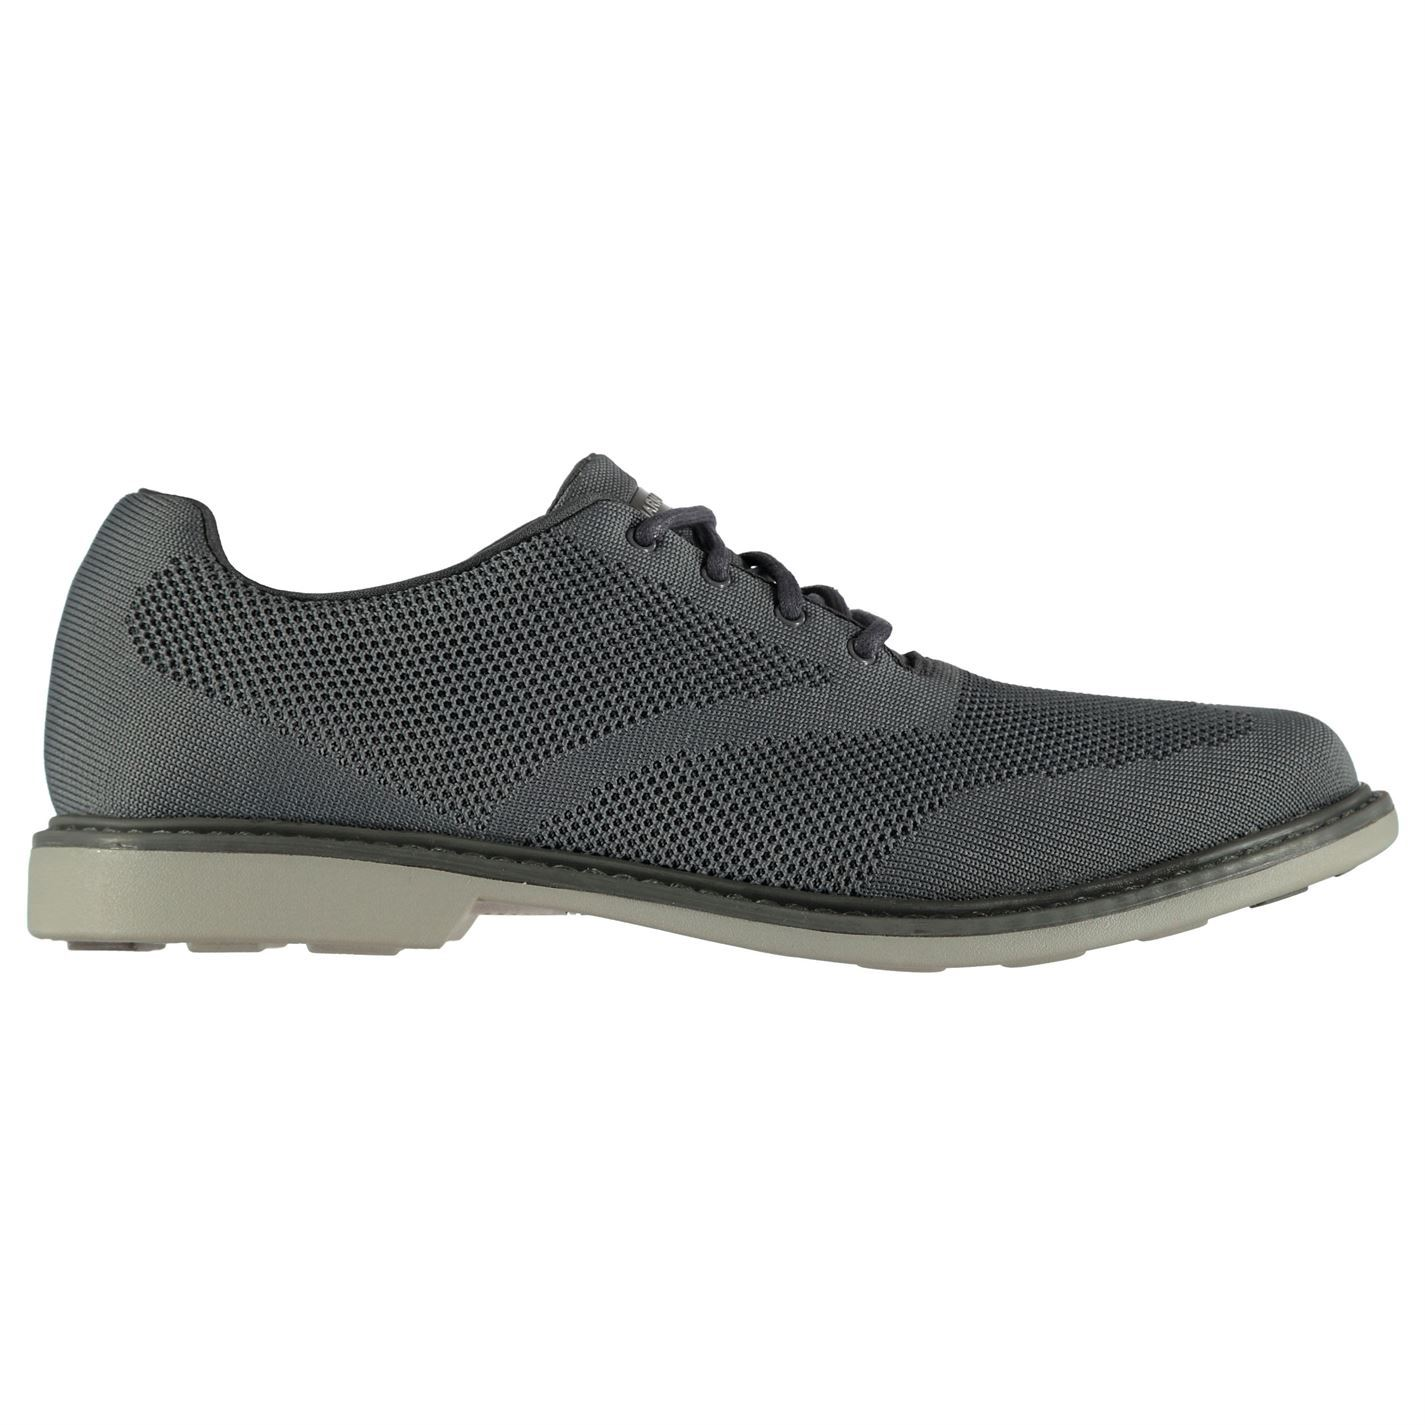 Skechers  Uomo Clubman Padded Schuhes Casual Lace Up Padded Clubman Ankle Collar Dress Knit Memory 2fdb84